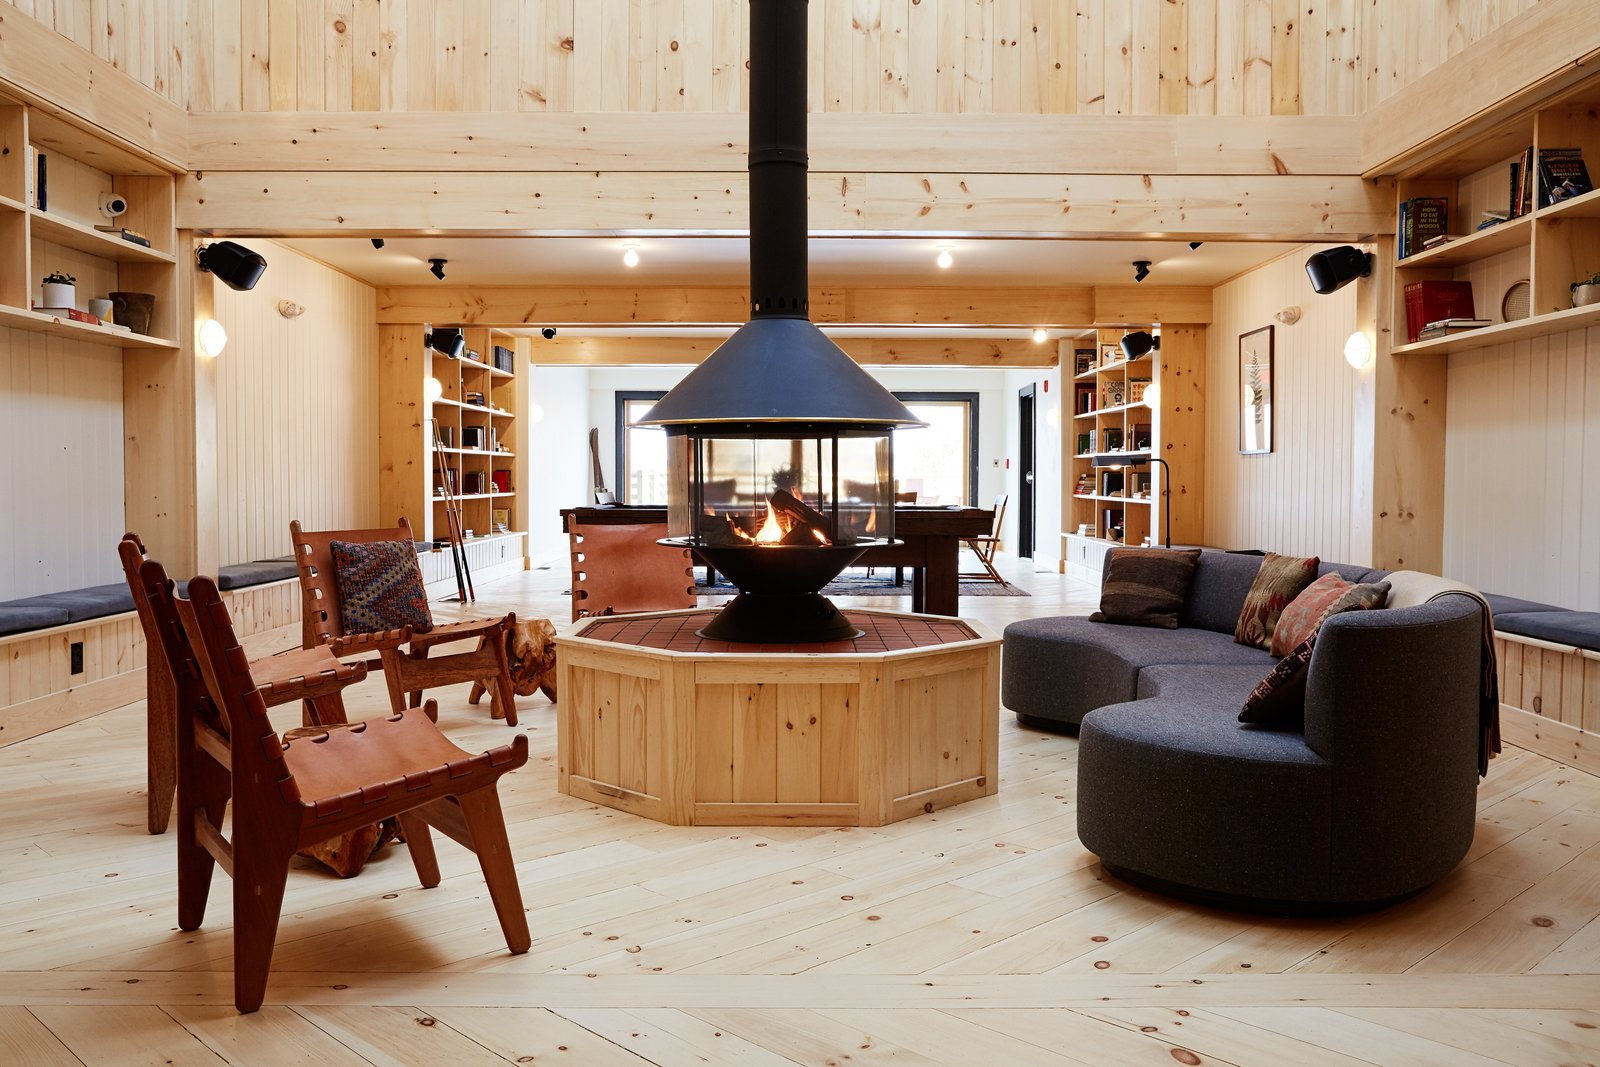 You'll also find a 1,850-square-foot library lounge that can be used as an event space if desired. Tagged: Living Room, Chair, Ceiling Lighting, Gas Burning Fireplace, Wall Lighting, Sofa, and Light Hardwood Floor.  Photo 14 of 14 in A Modern Mountain Lodge That Will Make You Love Winter Like Never Before